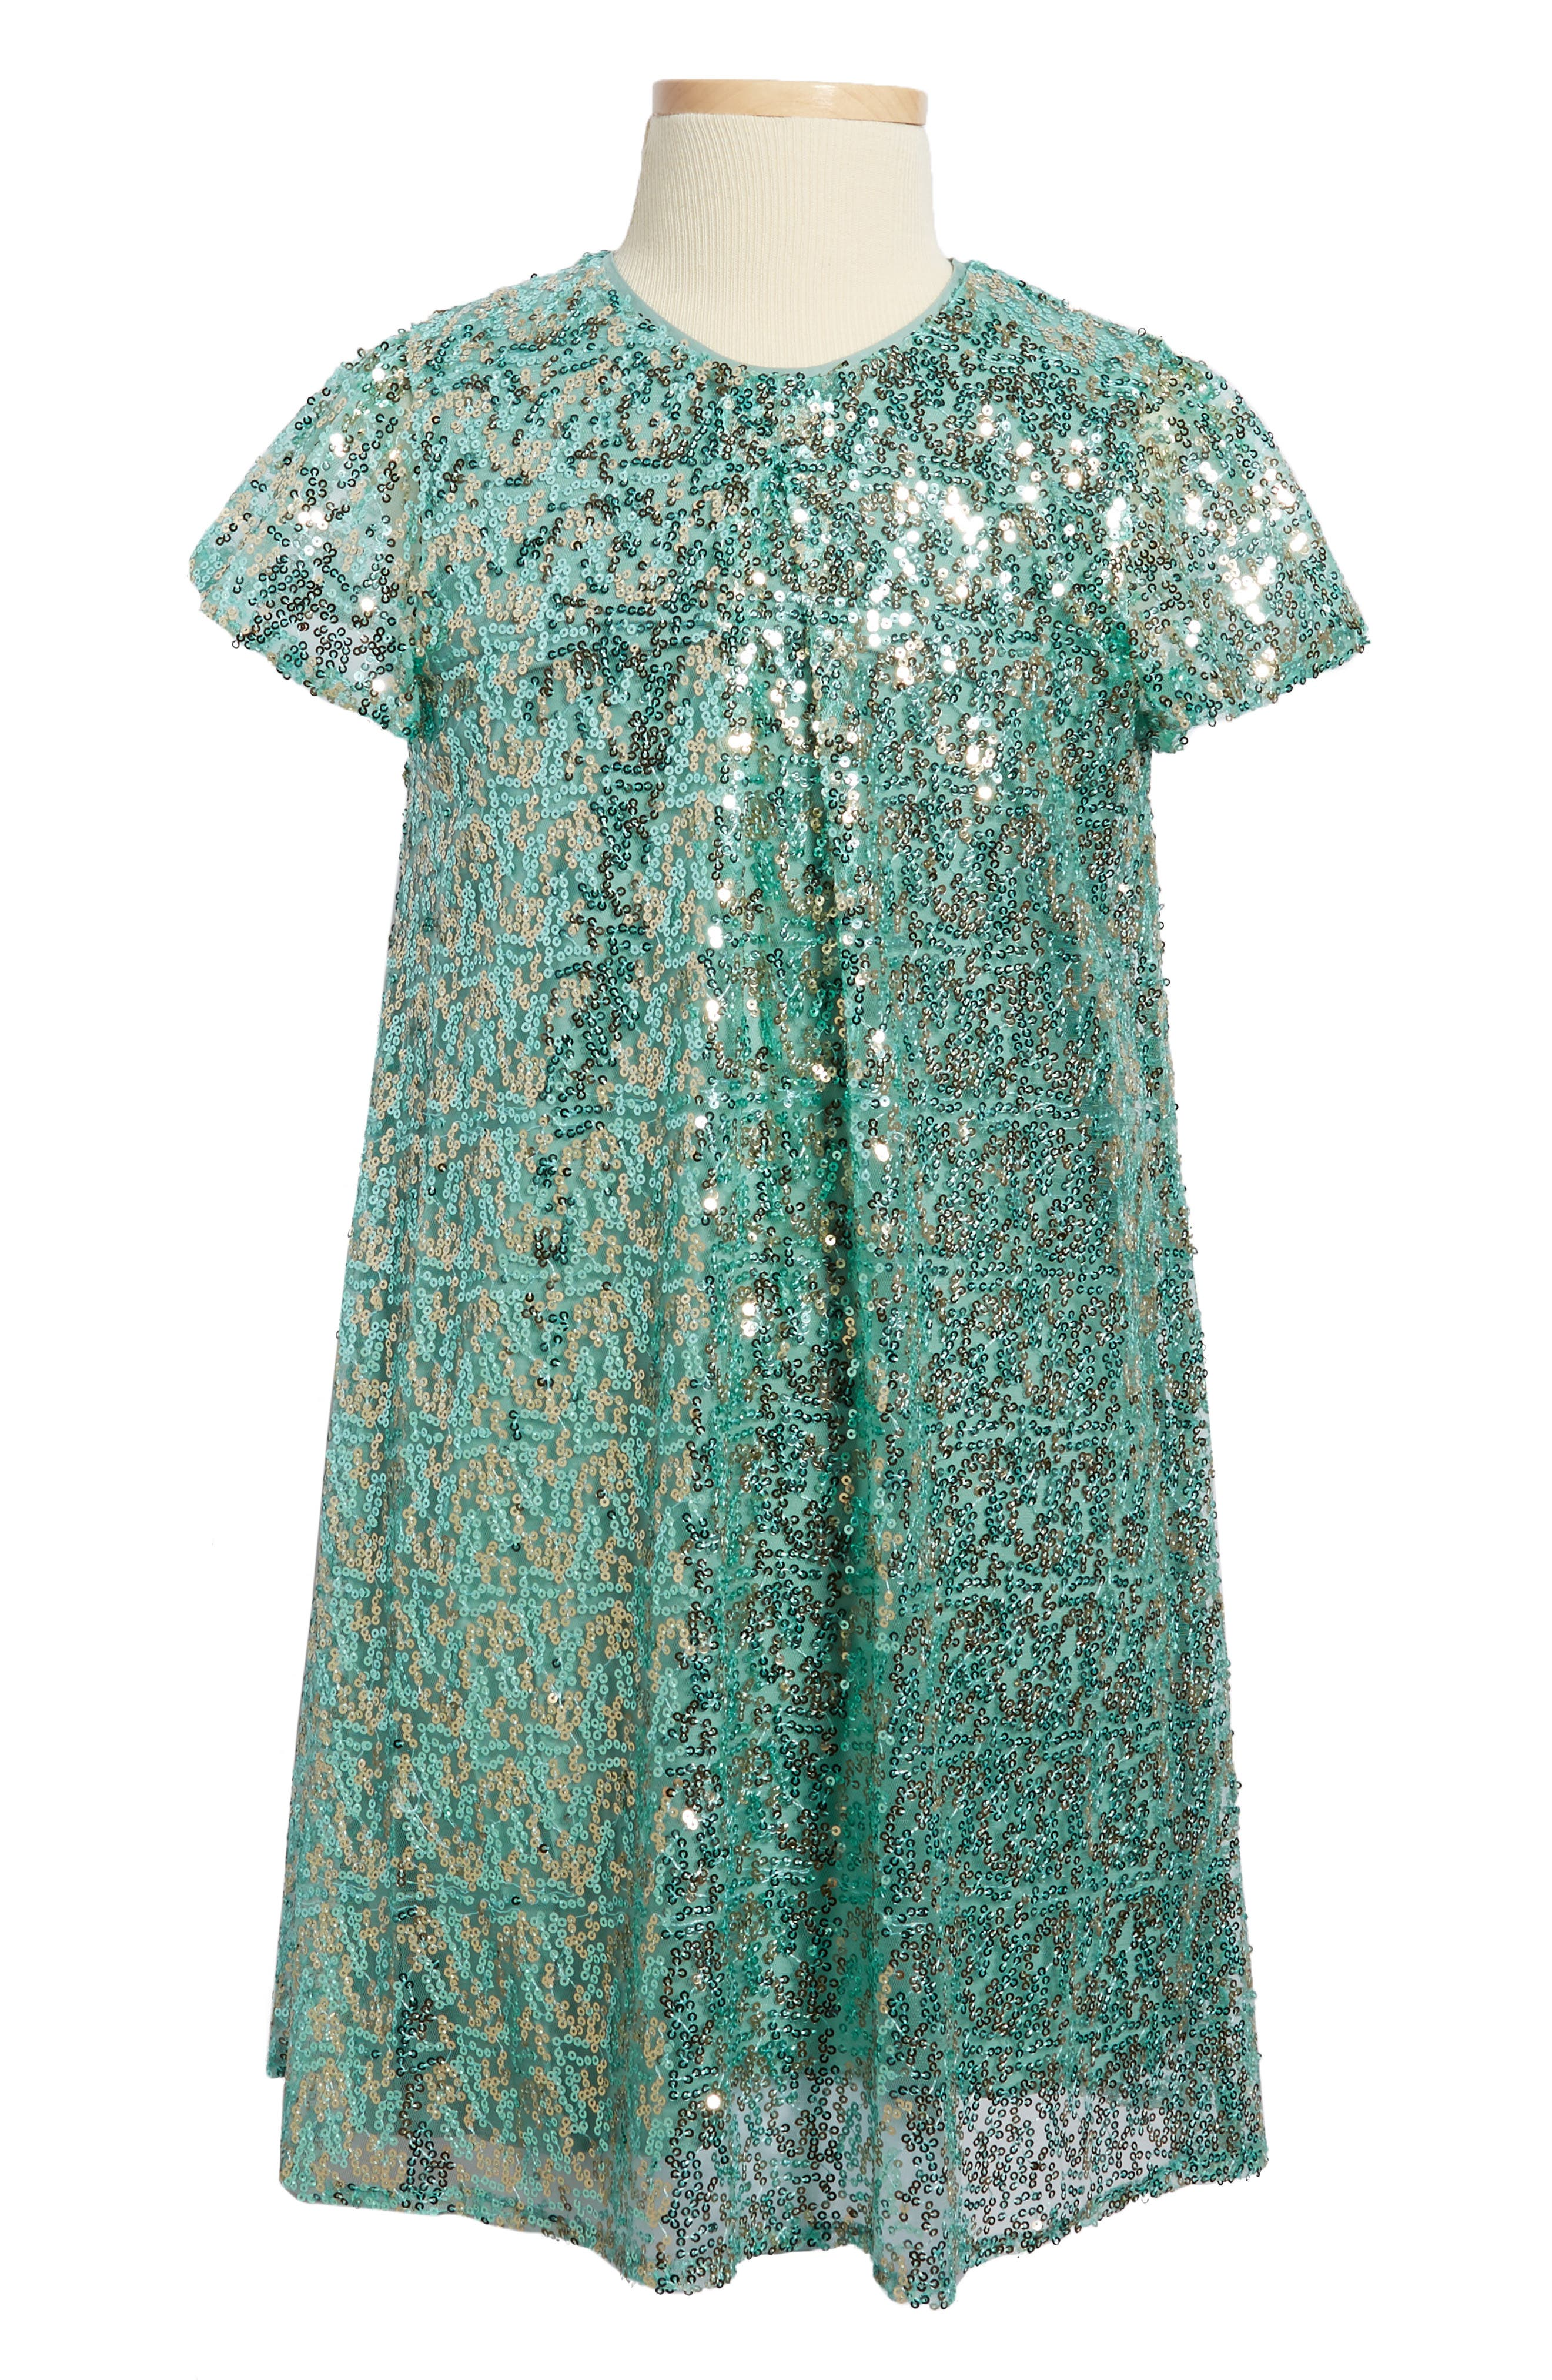 Sequin Embellished Dress,                             Main thumbnail 1, color,                             400